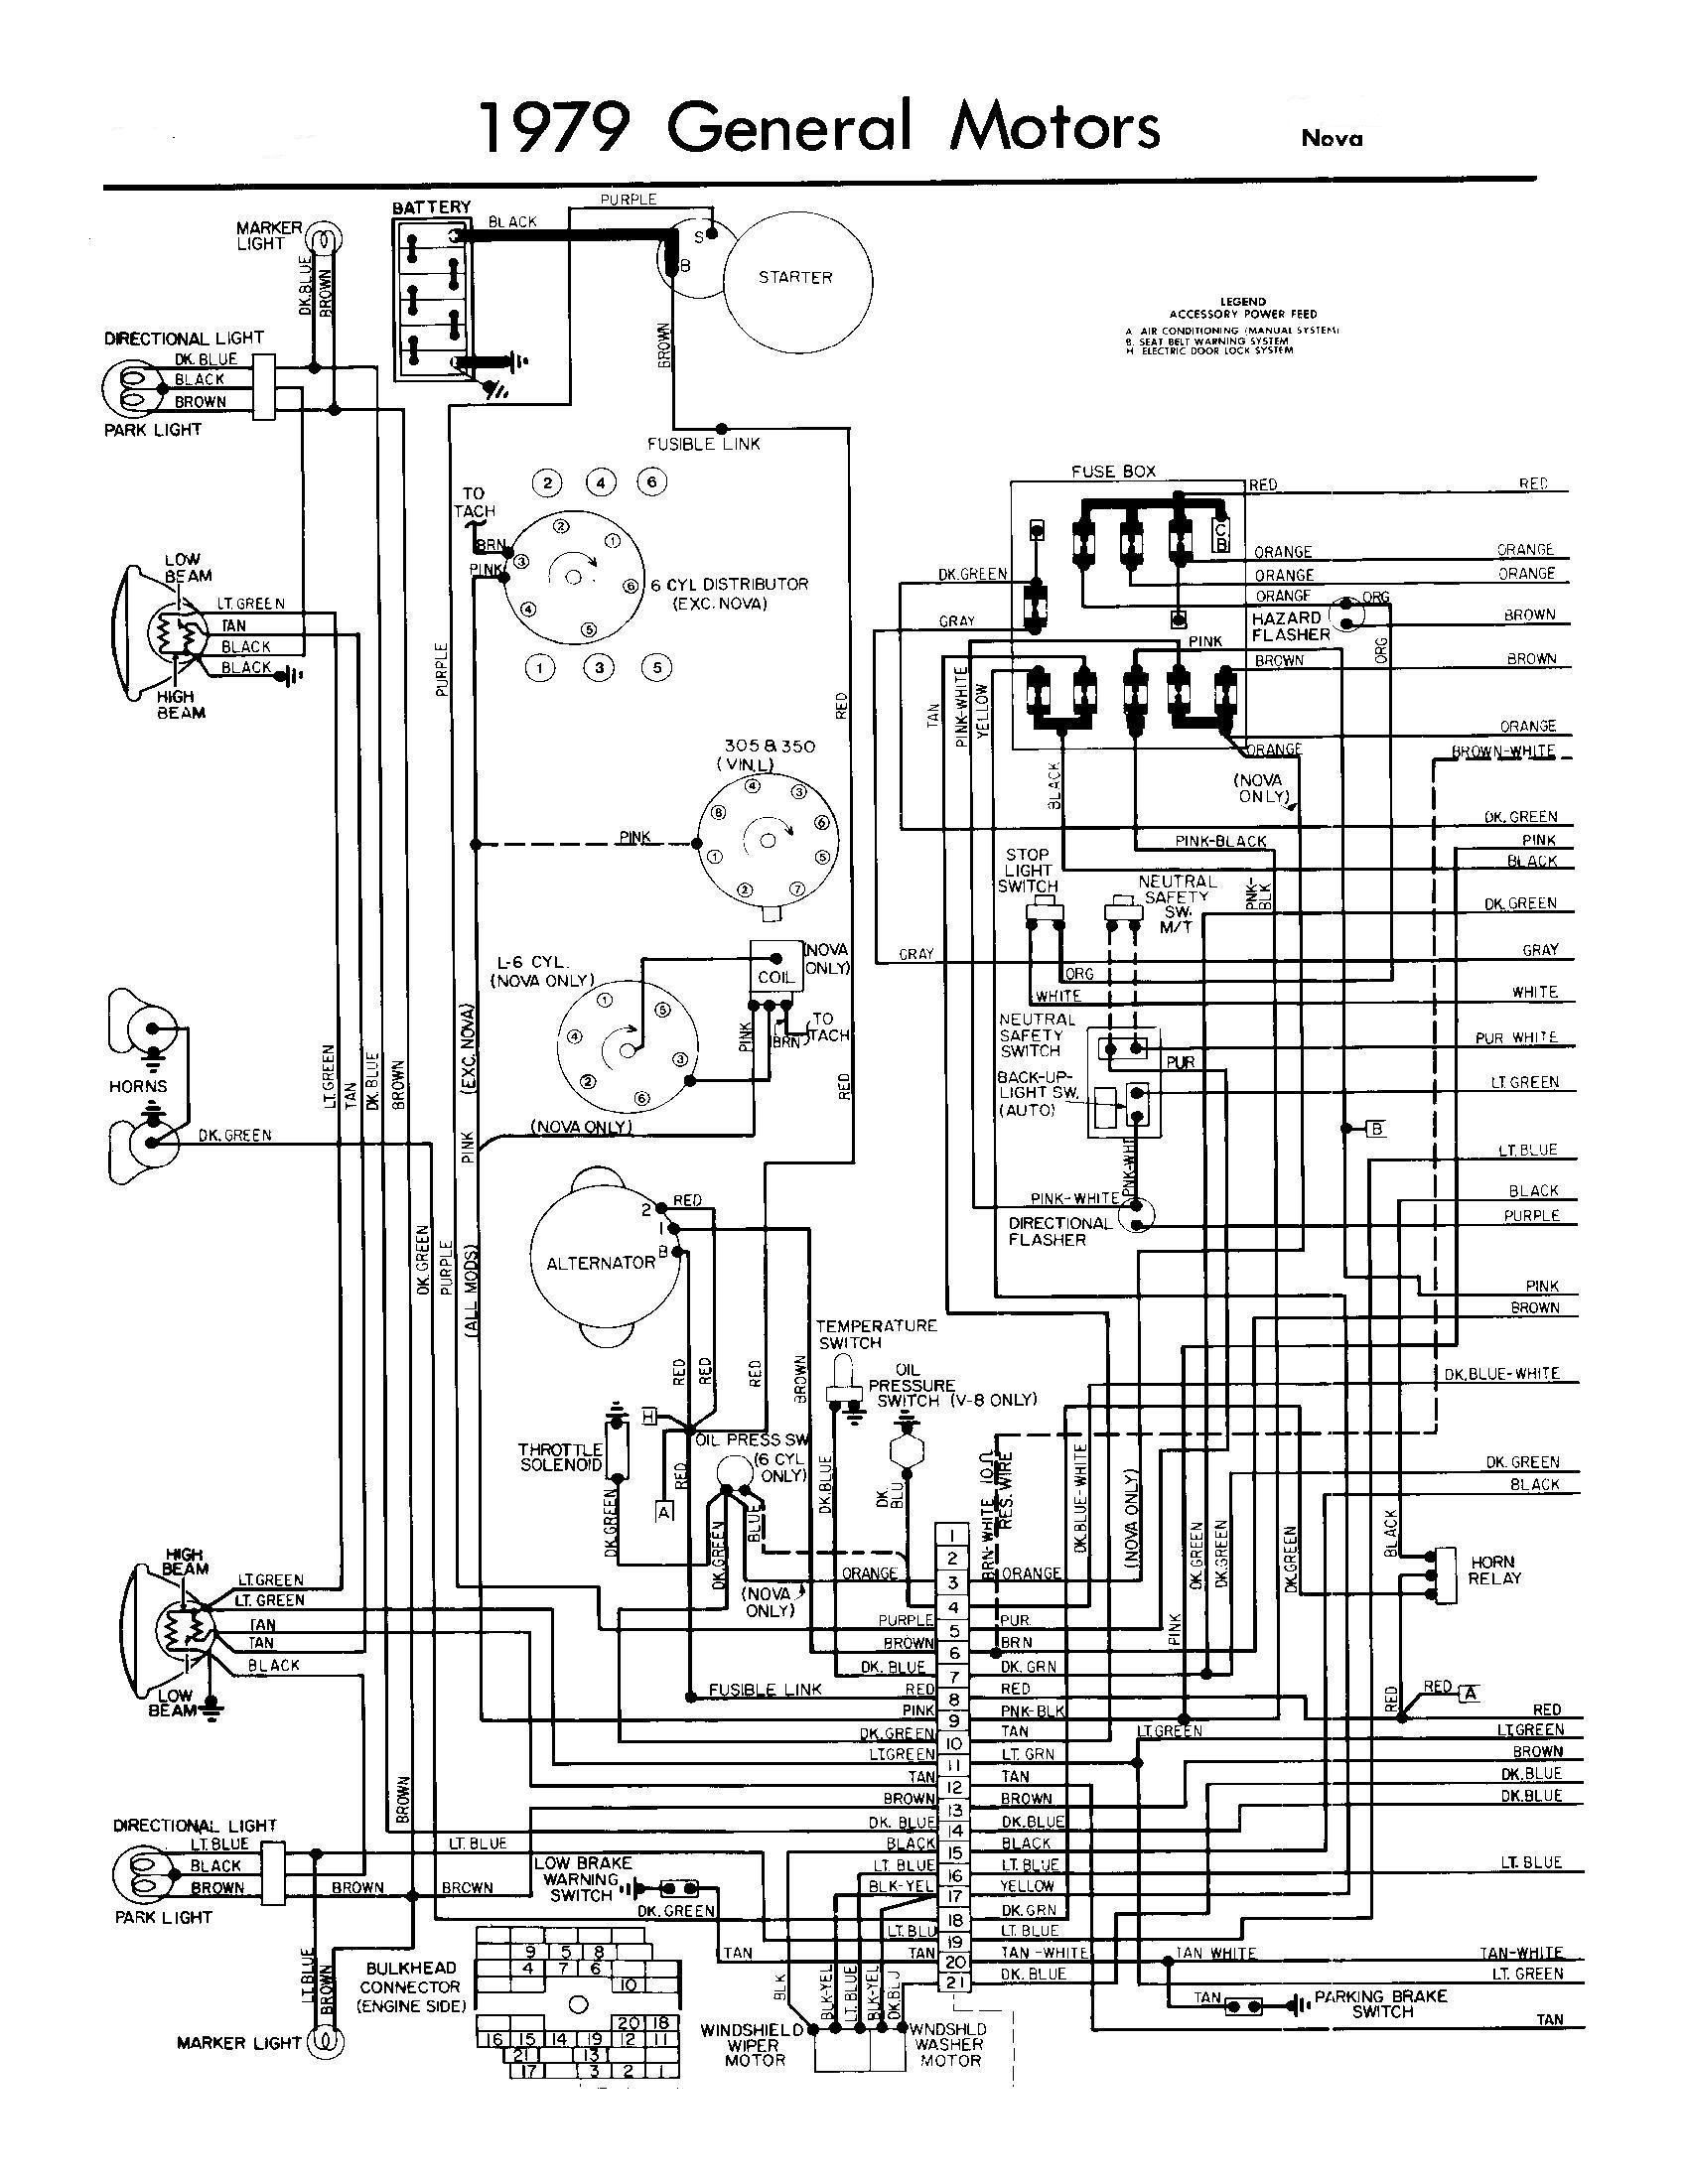 chevy nova wiring diagram chevy nova wiring diagram chevy truck rh poscaribe co 1964 nova wiring diagram 1962 nova turn signal wiring diagram